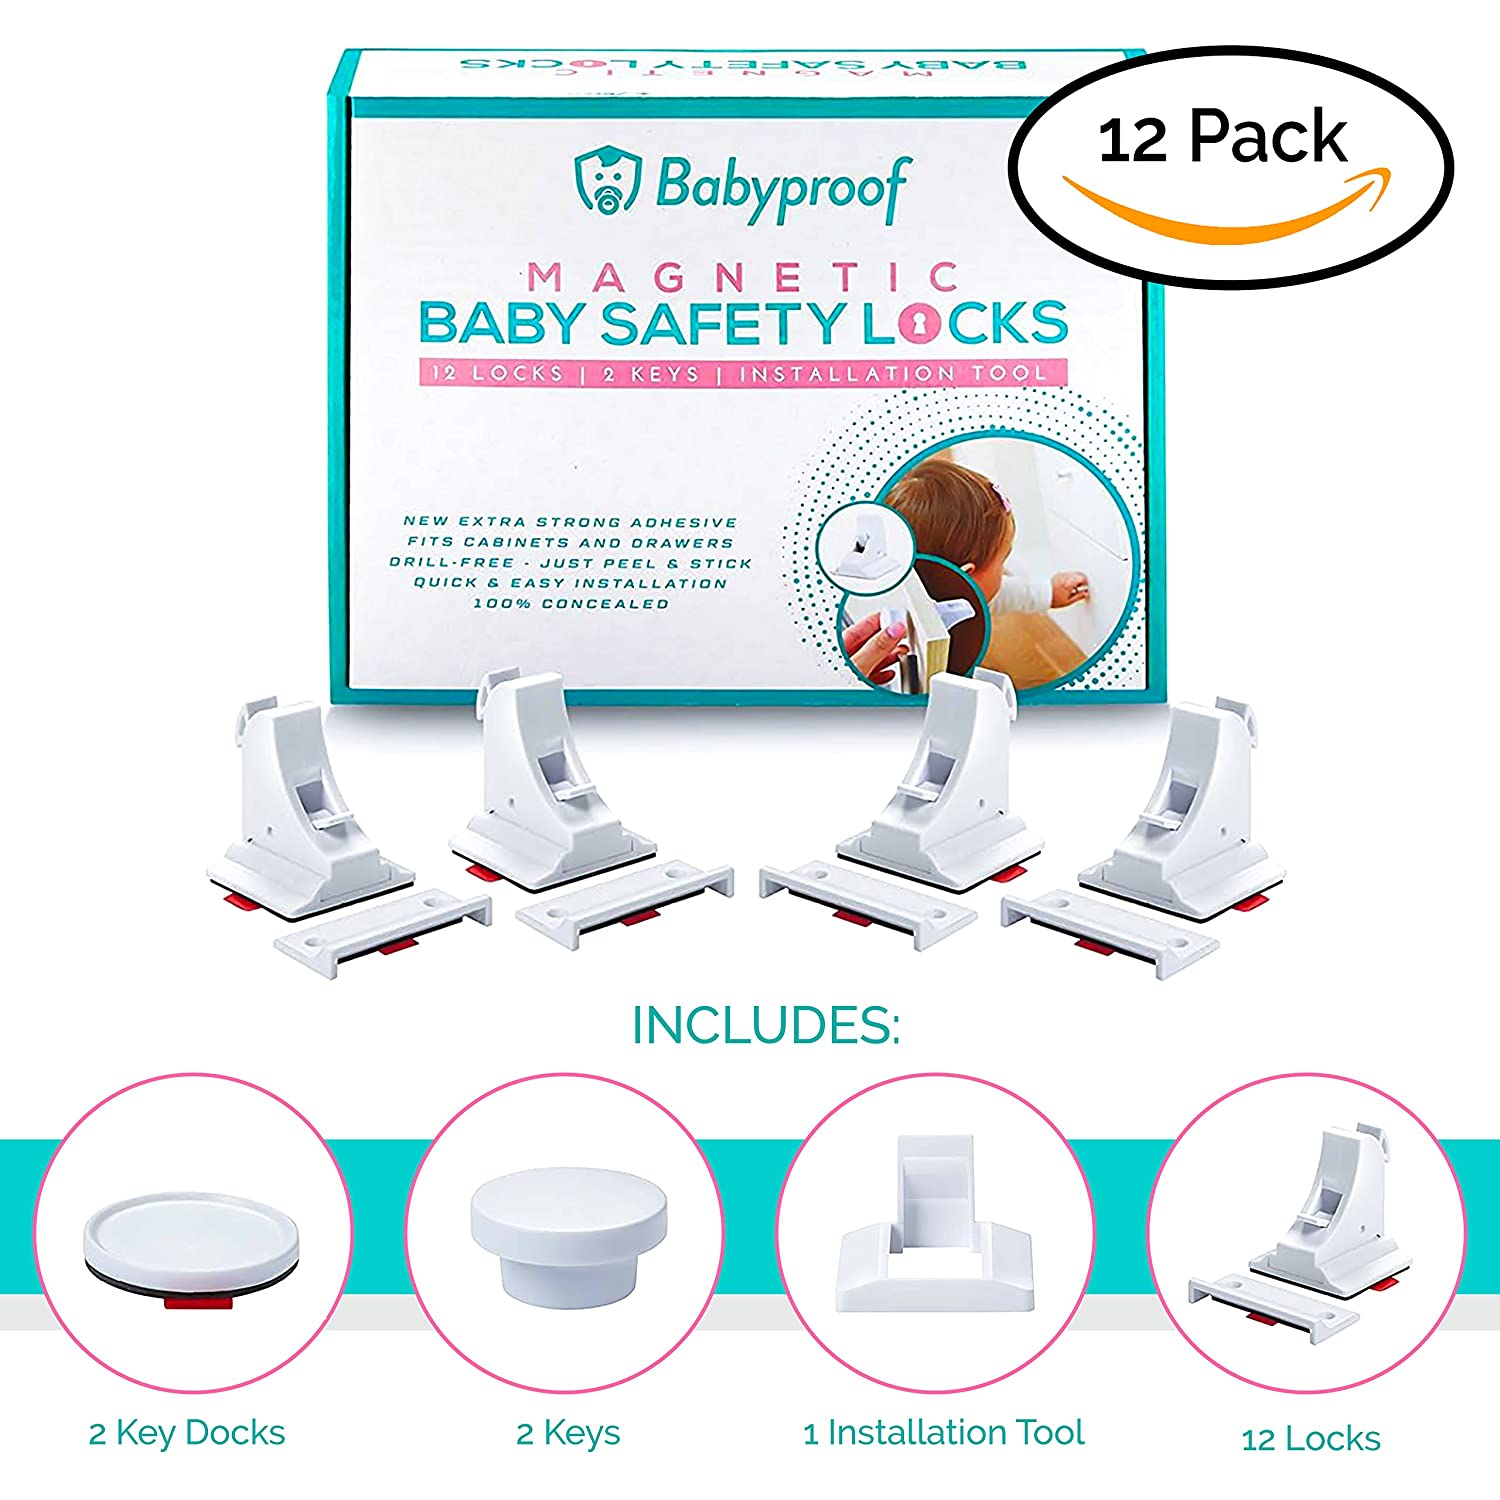 Babyproof Magnetic Cabinet Safety Locks - Extra Strong Hold, No Tools or Screws Needed - Fits Your Drawer, Cabinet Or Door - ON/Off Disengage Switch - Easy and Fast Installation